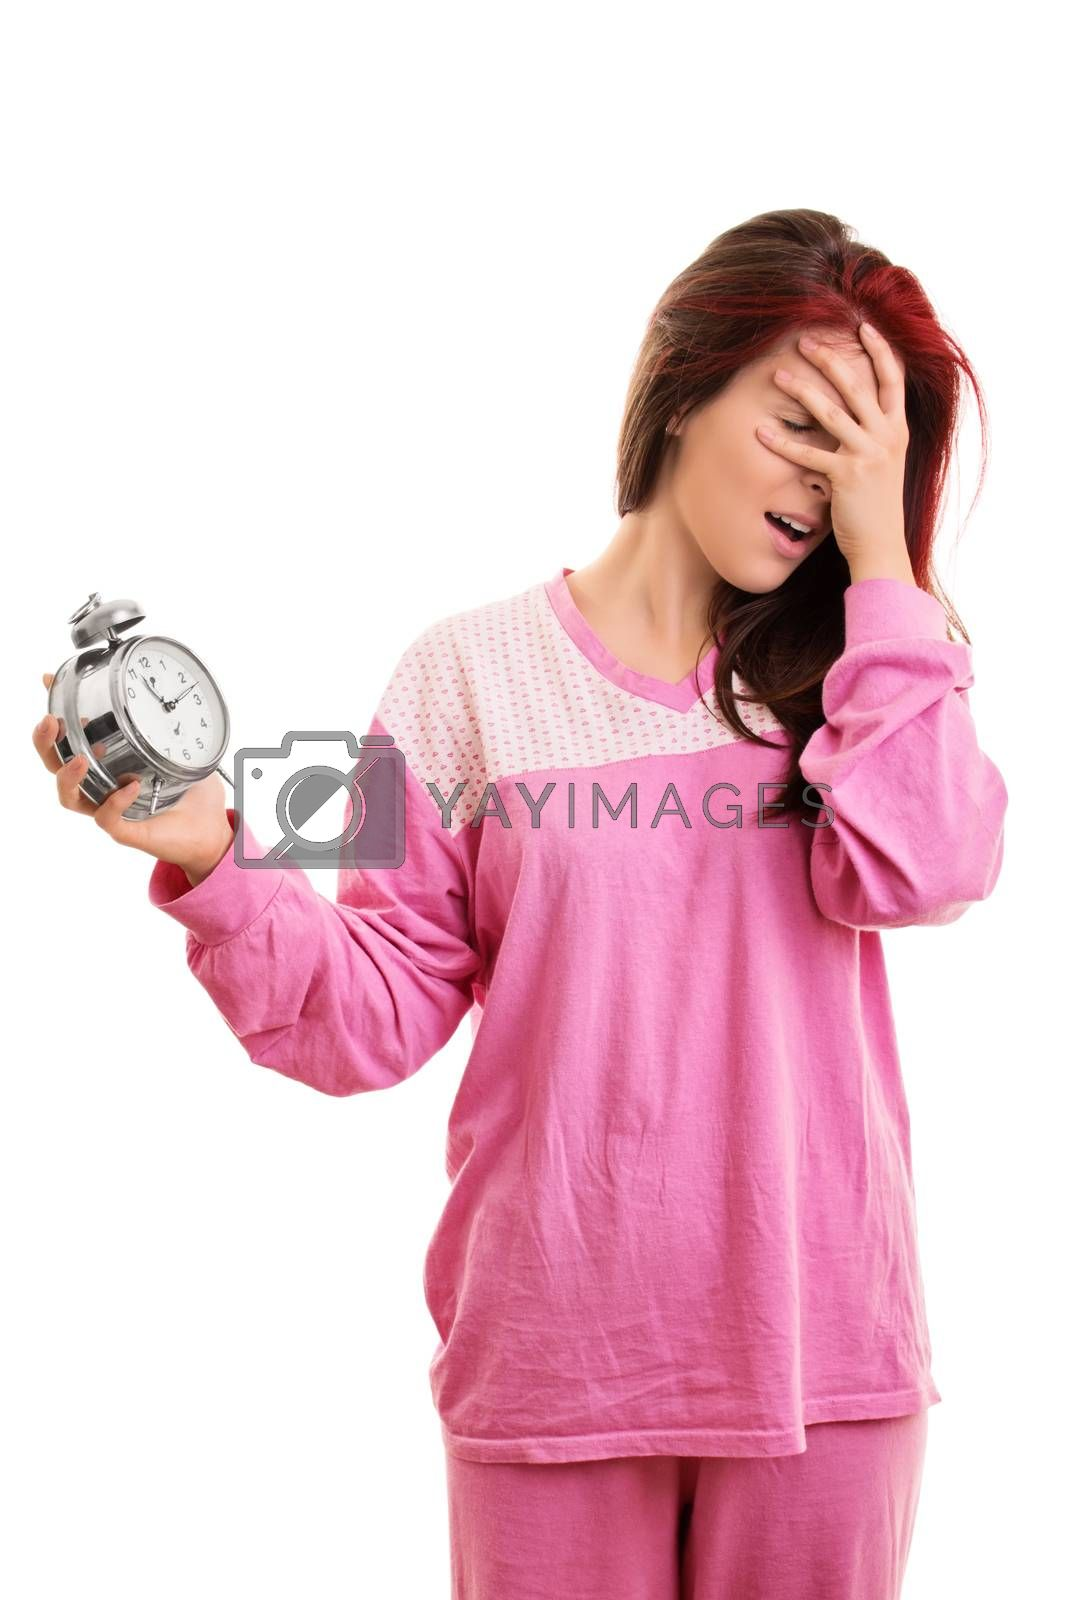 Being late concept. Portrait of a young woman in pink pajamas holding an alarm clock and covering her face with her hand, looking tired and annoyed, isolated on white background. Girl panicking about being late.